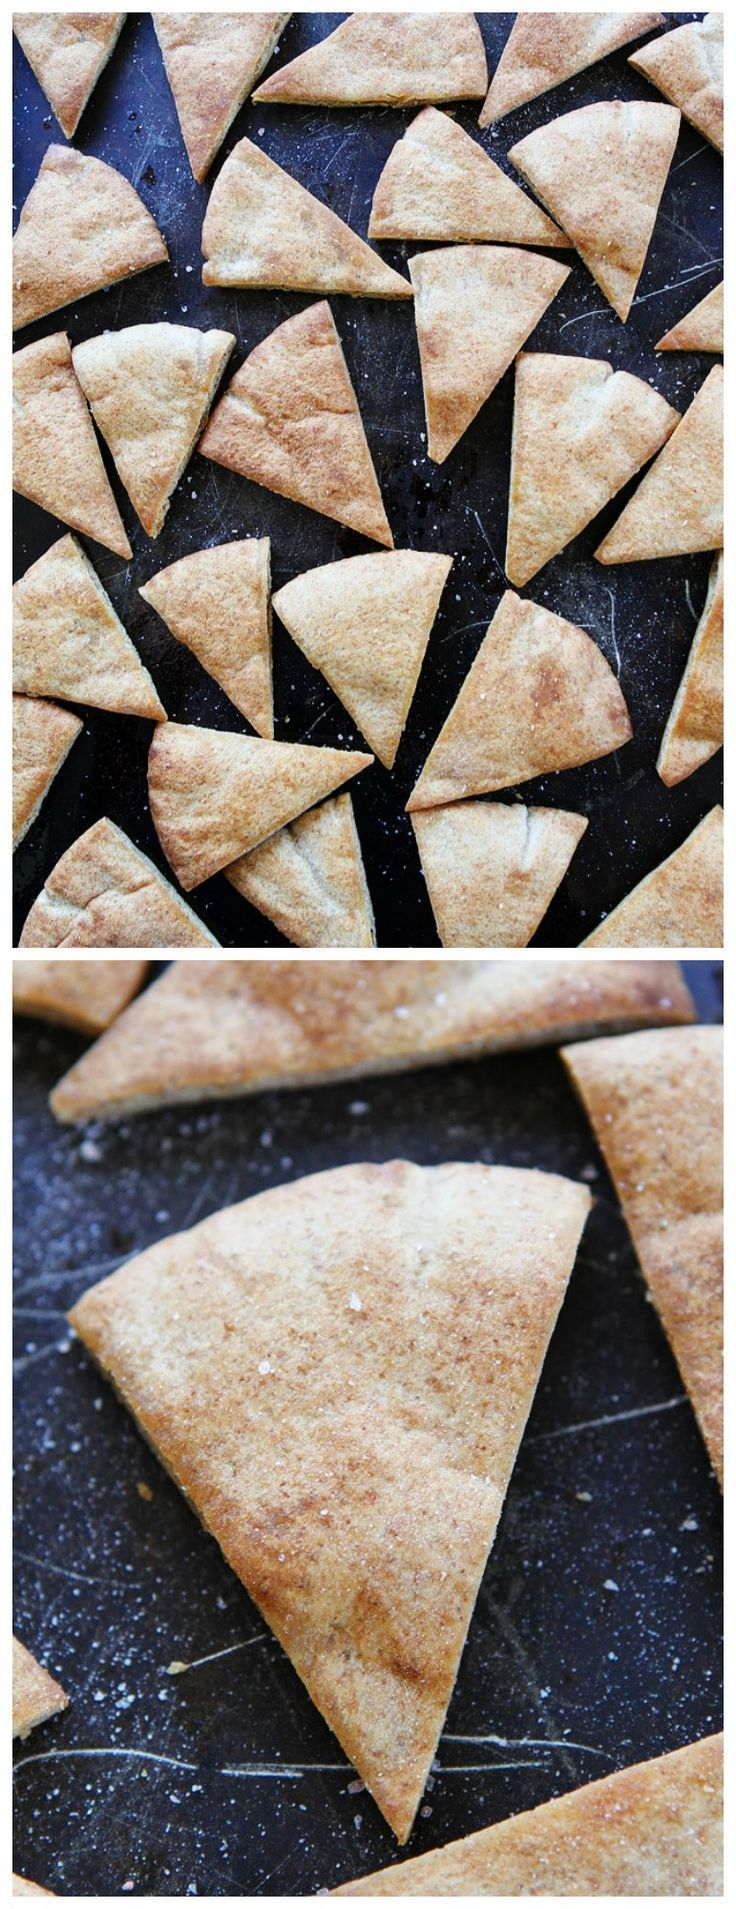 Homemade Pita Chip Recipe on http://twopeasandtheirpod.com. These pita chips are easy to make at home and much better than store bought! You only need 3 ingredients!